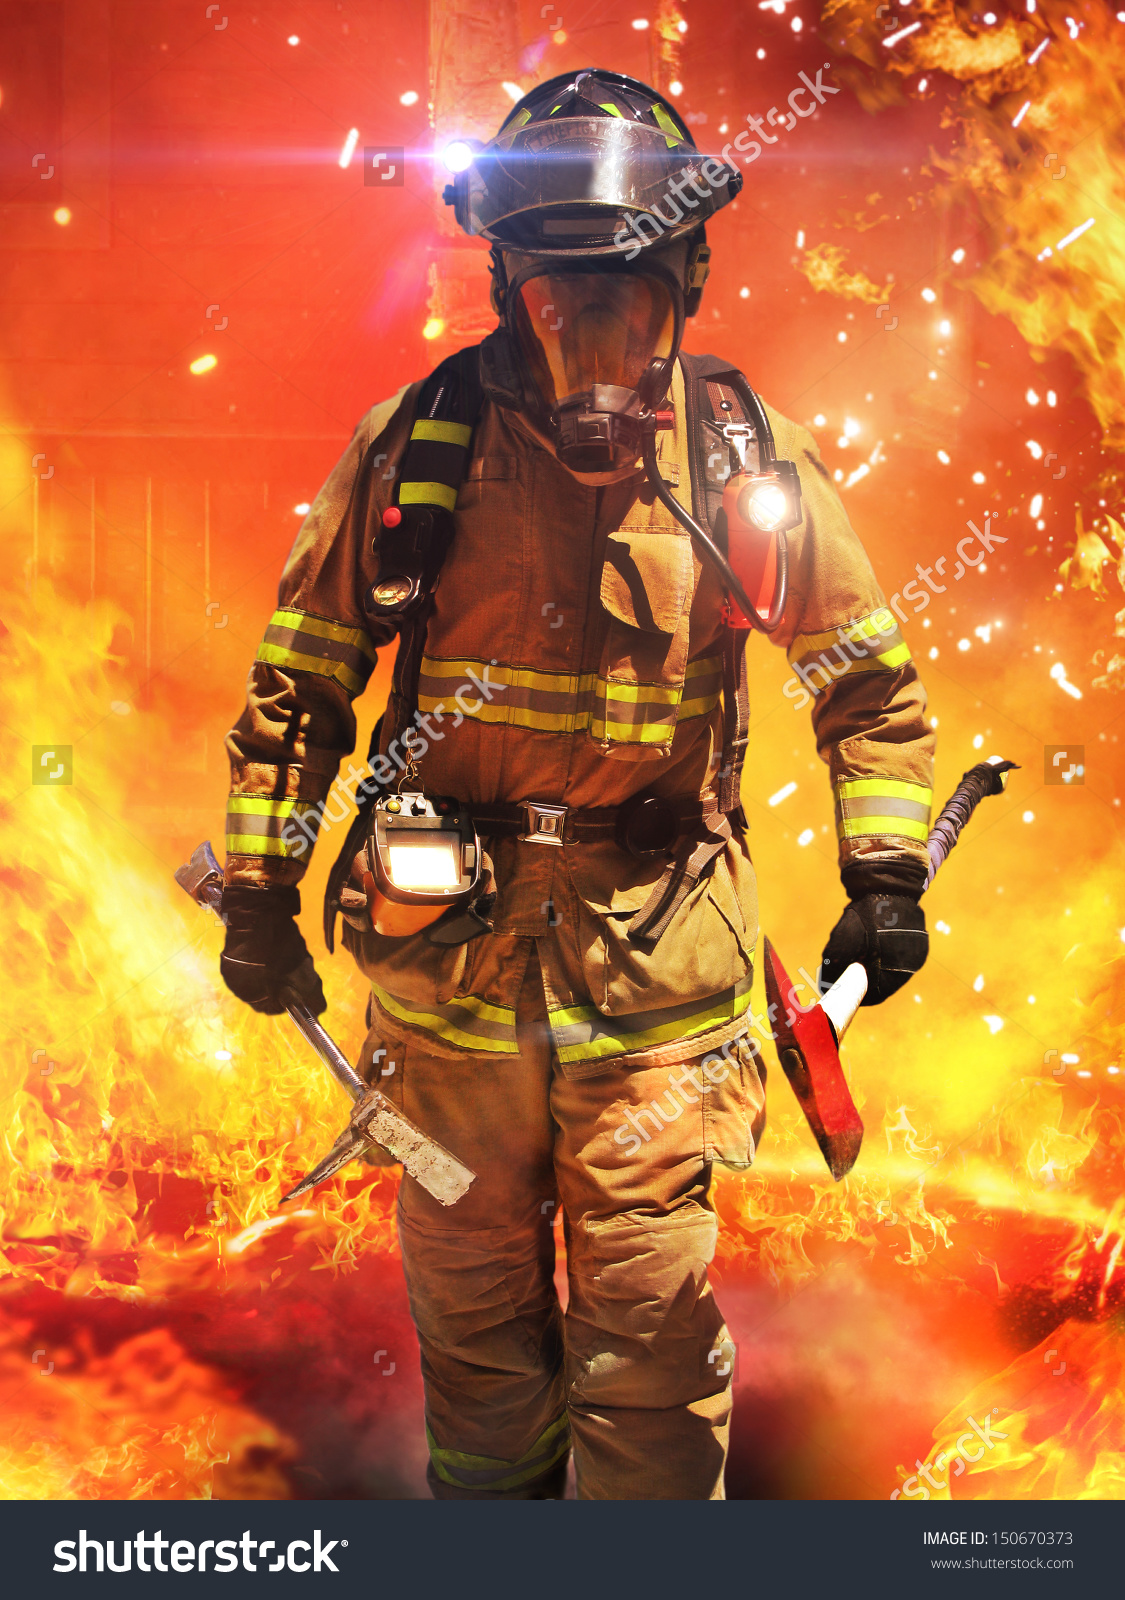 Firefighter Pics, Men Collection